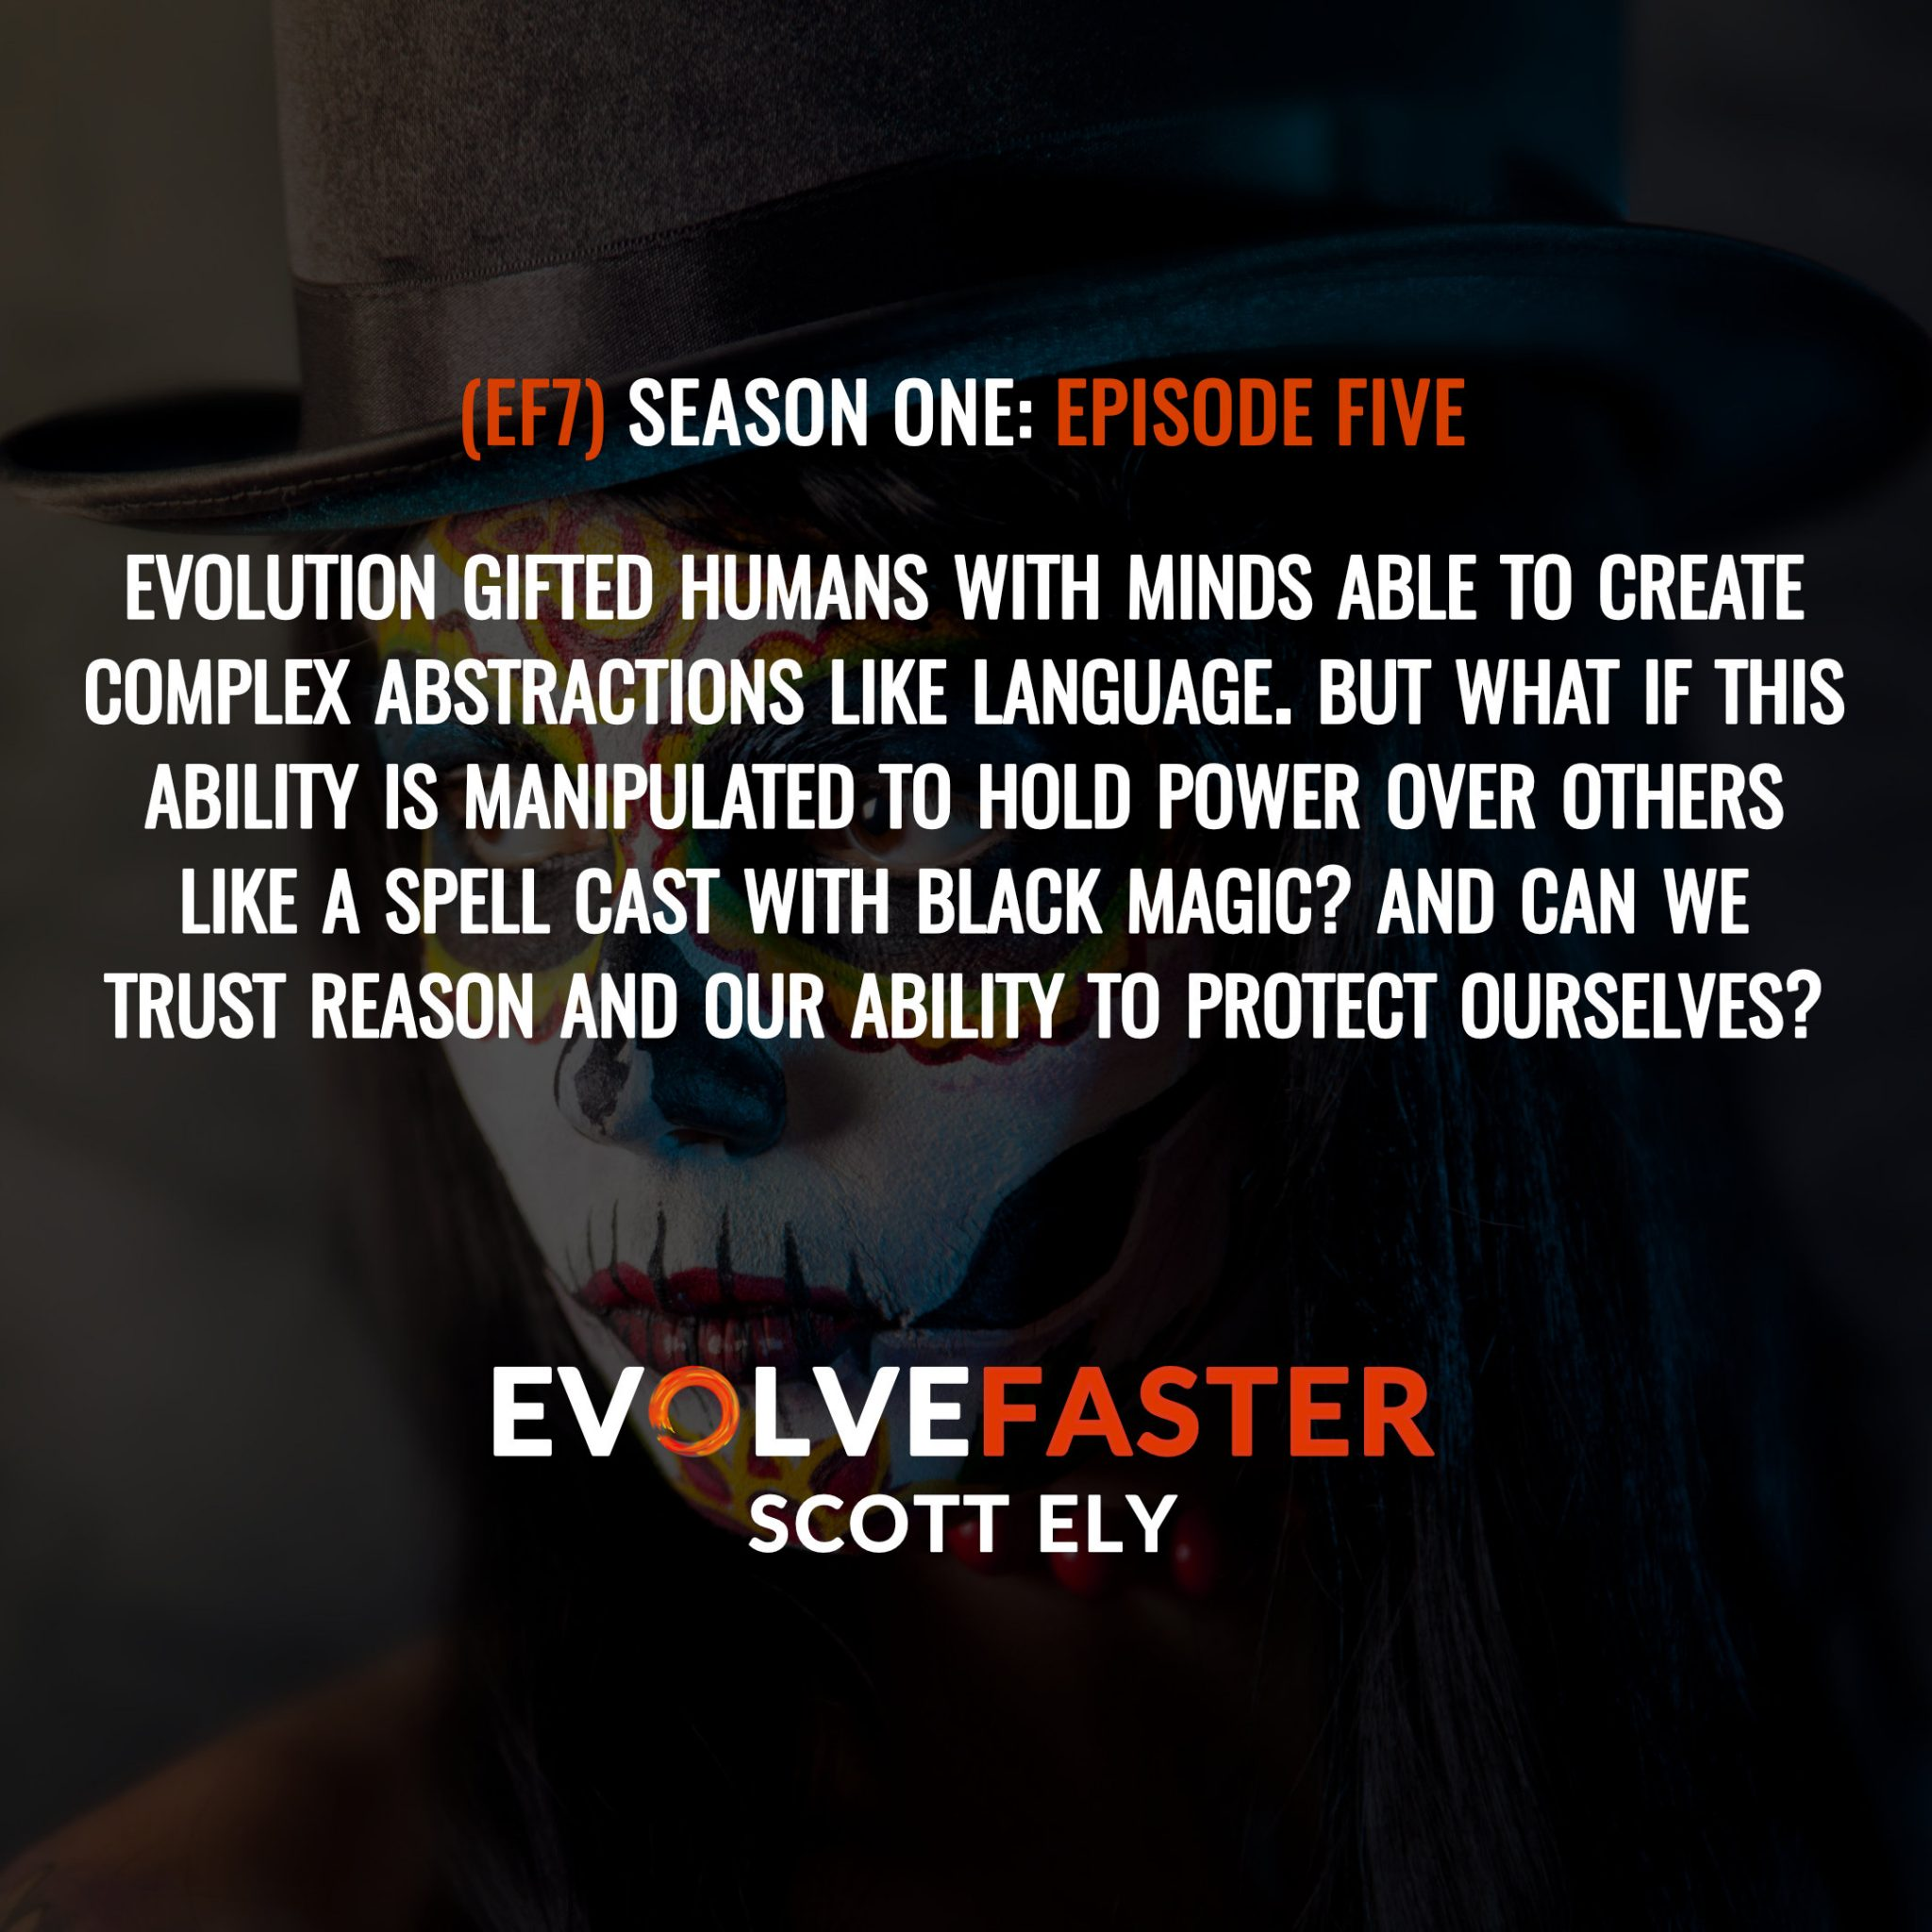 (EF7) S1-E5: Sleight of Mind The Black Magic of Rhetoric The Evolve Faster Podcast with Scott Ely Season One